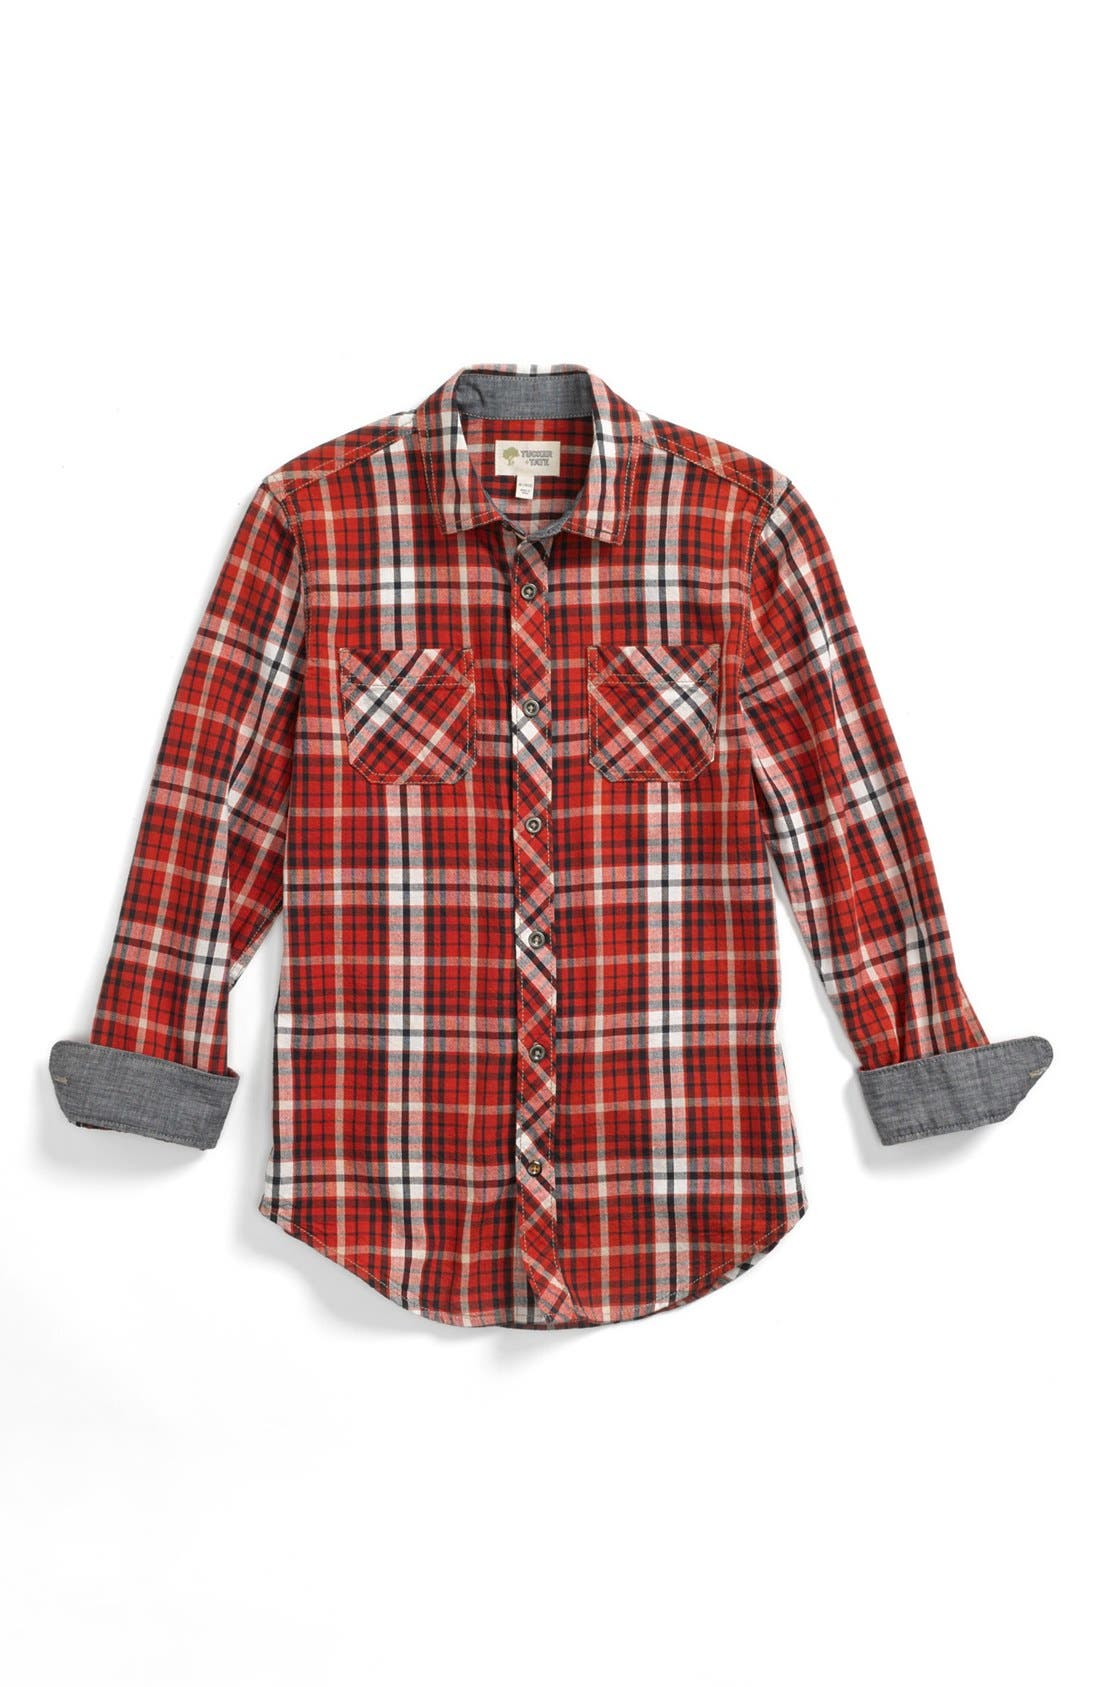 Alternate Image 1 Selected - Tucker + Tate Plaid Shirt & Jeans (Little Boys & Big Boys)